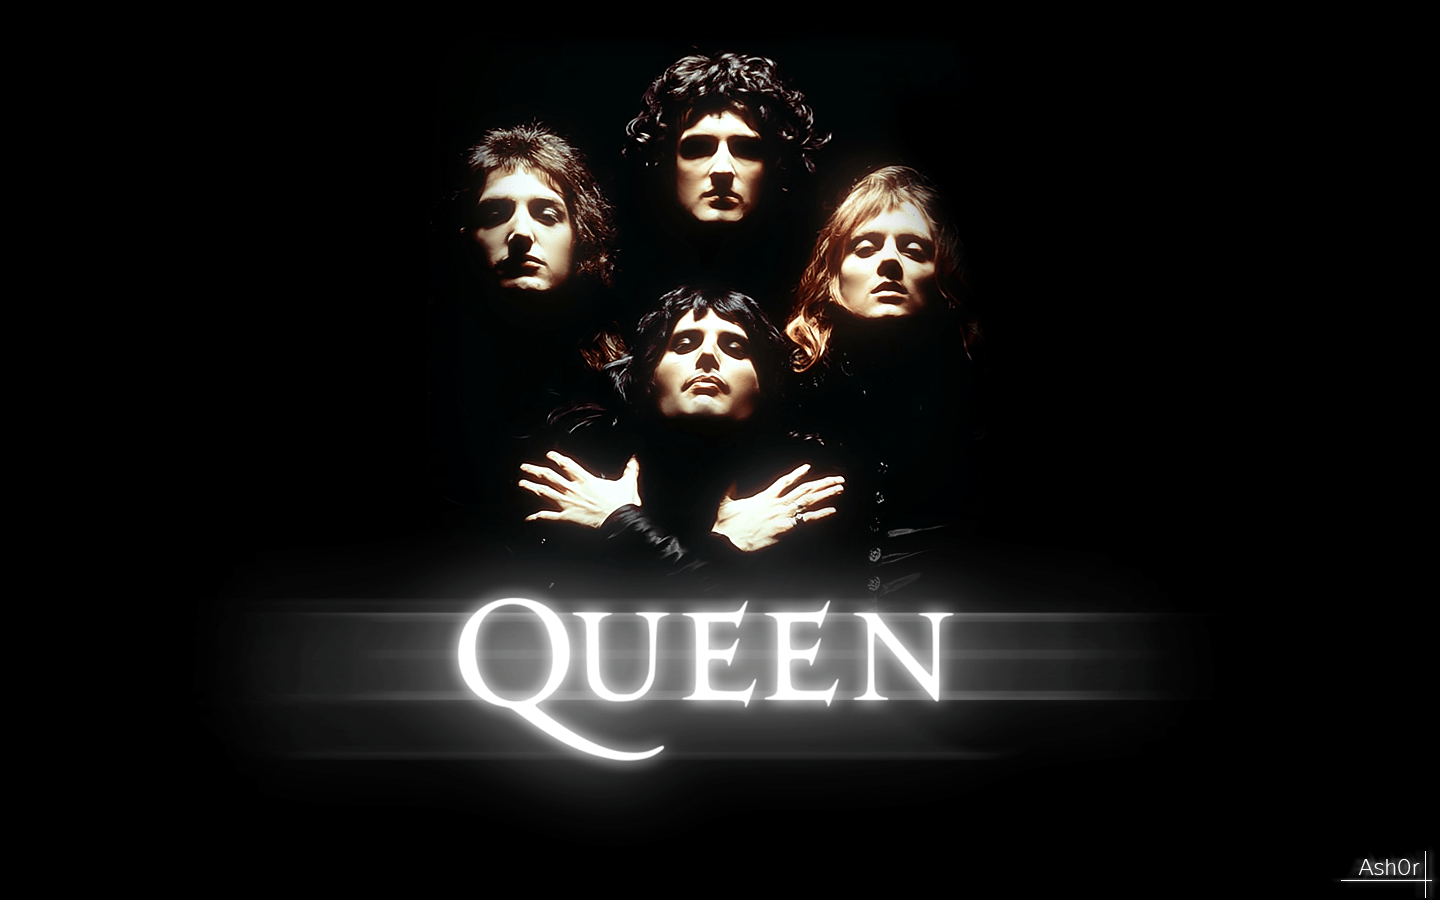 queen wallpapers - wallpaper cave